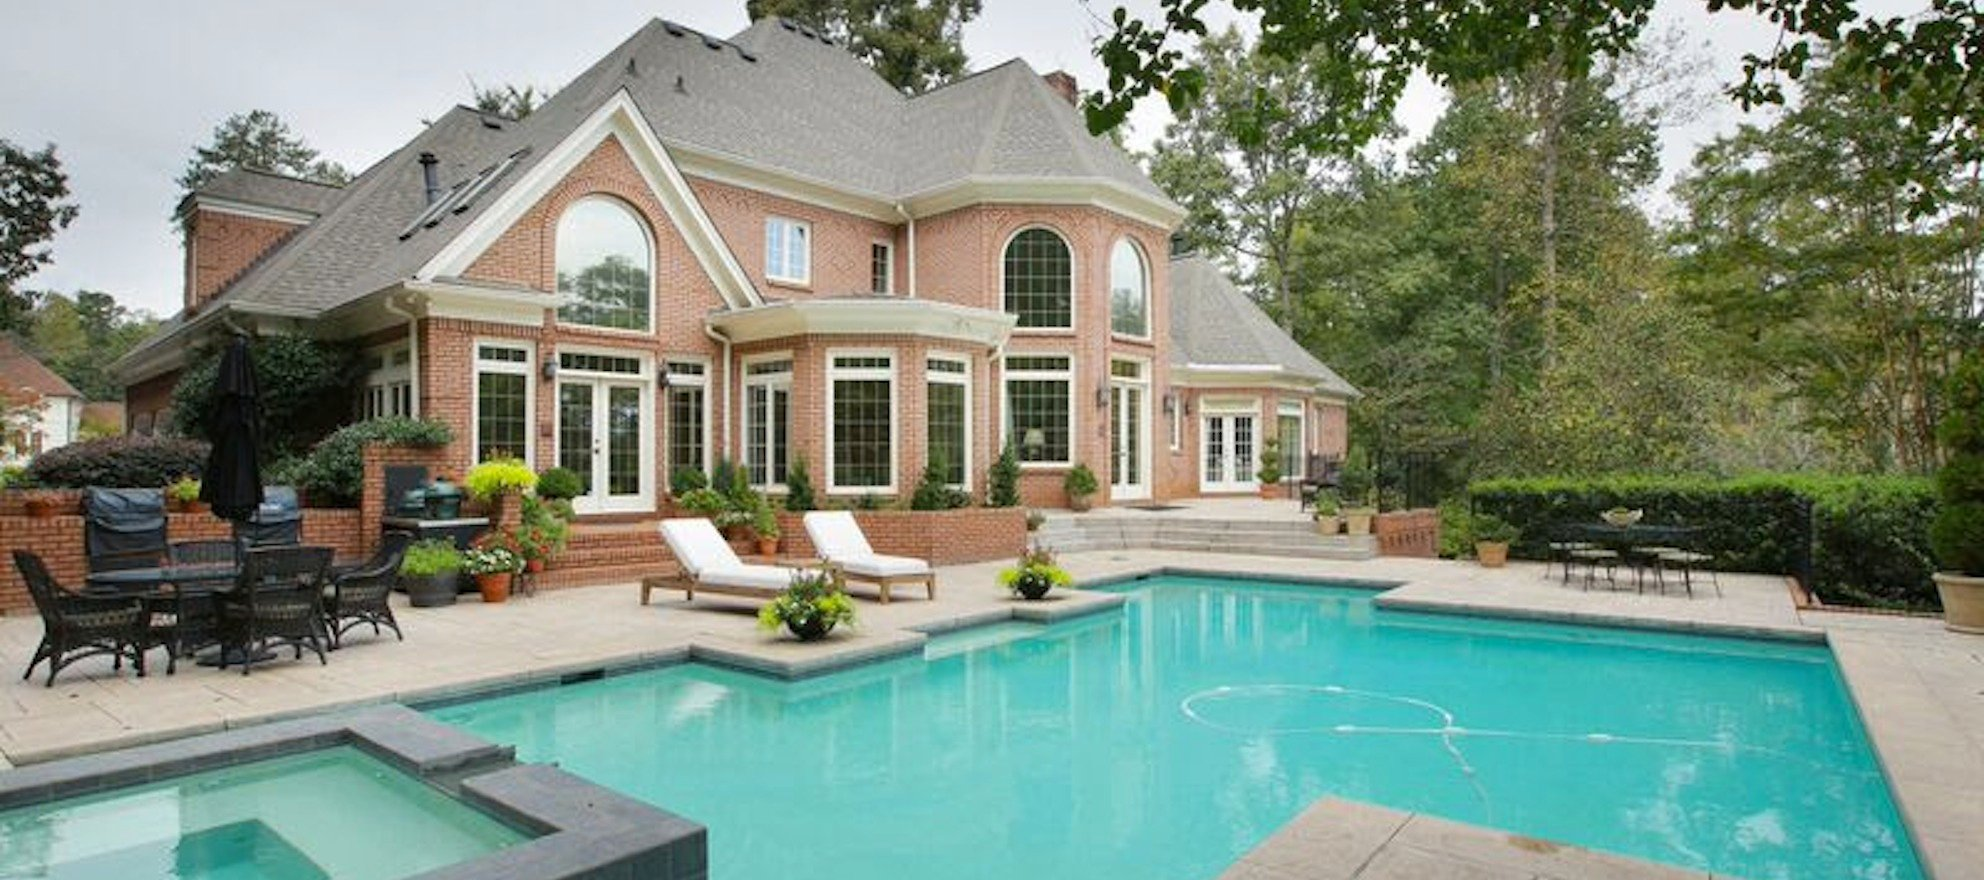 3-D home of the day: Southern country club